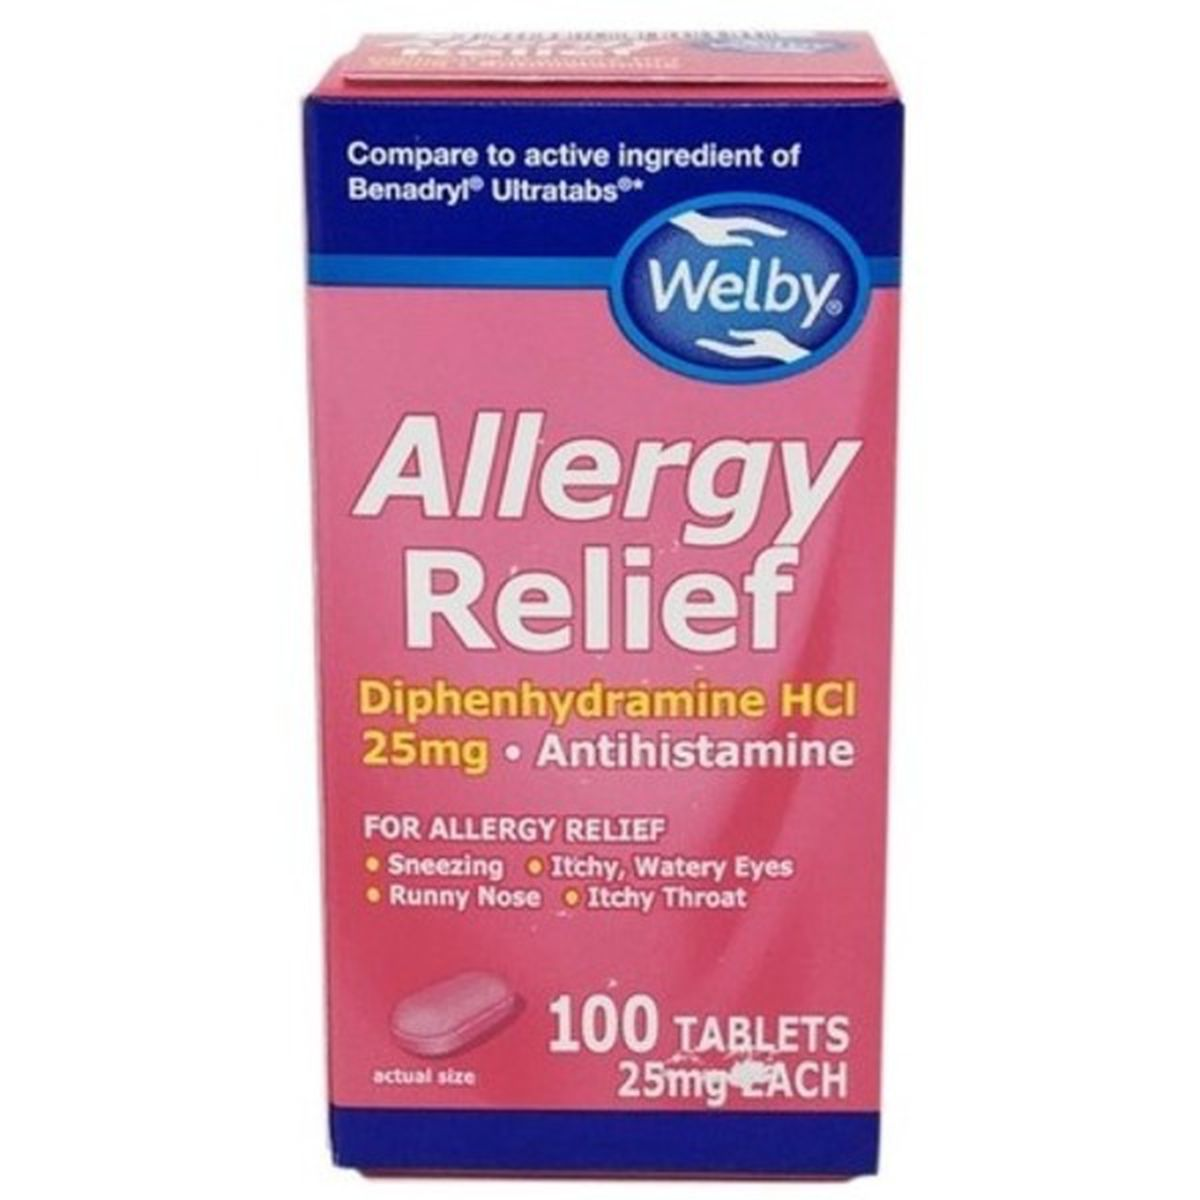 Allergy Relief, Diphenhydramine HCL, 25mg Tablets